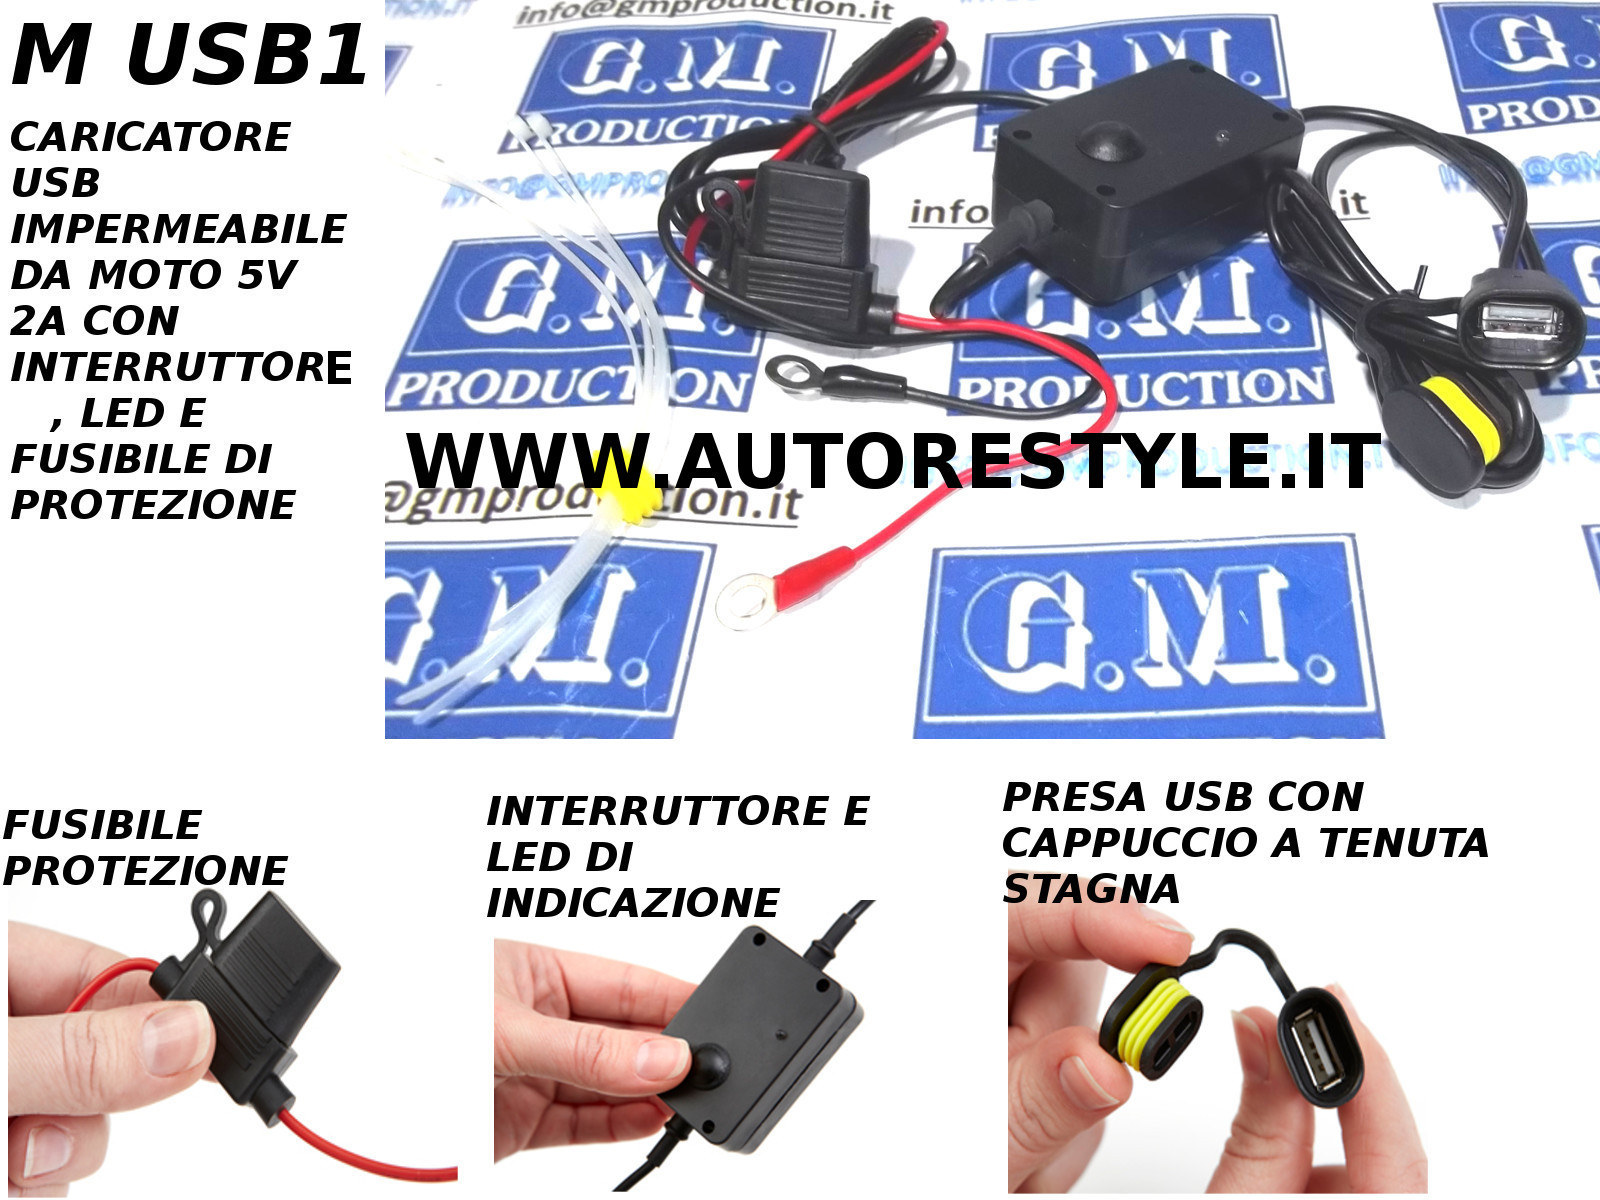 CARICATORE PRESA USB 5V 2A MOTO IMPERMEABILE CON INTERRUTTORE E FUSIBILE IPHONE 4 5 6 IPAD GALAXY S3 S4 S5 S6 NOTE